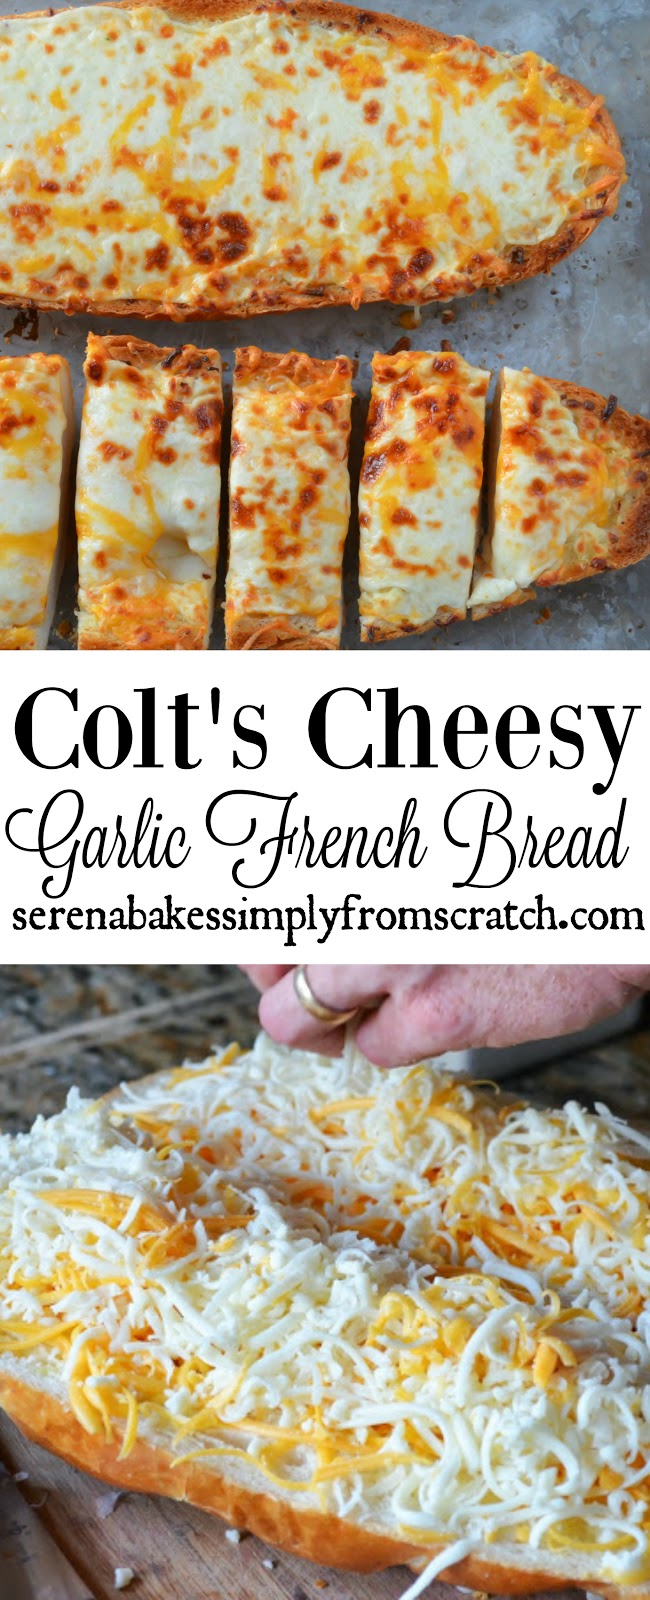 Colts cheesy garlic french bread serena bakes simply from scratch colts recipes for the all time best cheesy garlic french bread so good serenabakessimplyfromscratch forumfinder Choice Image